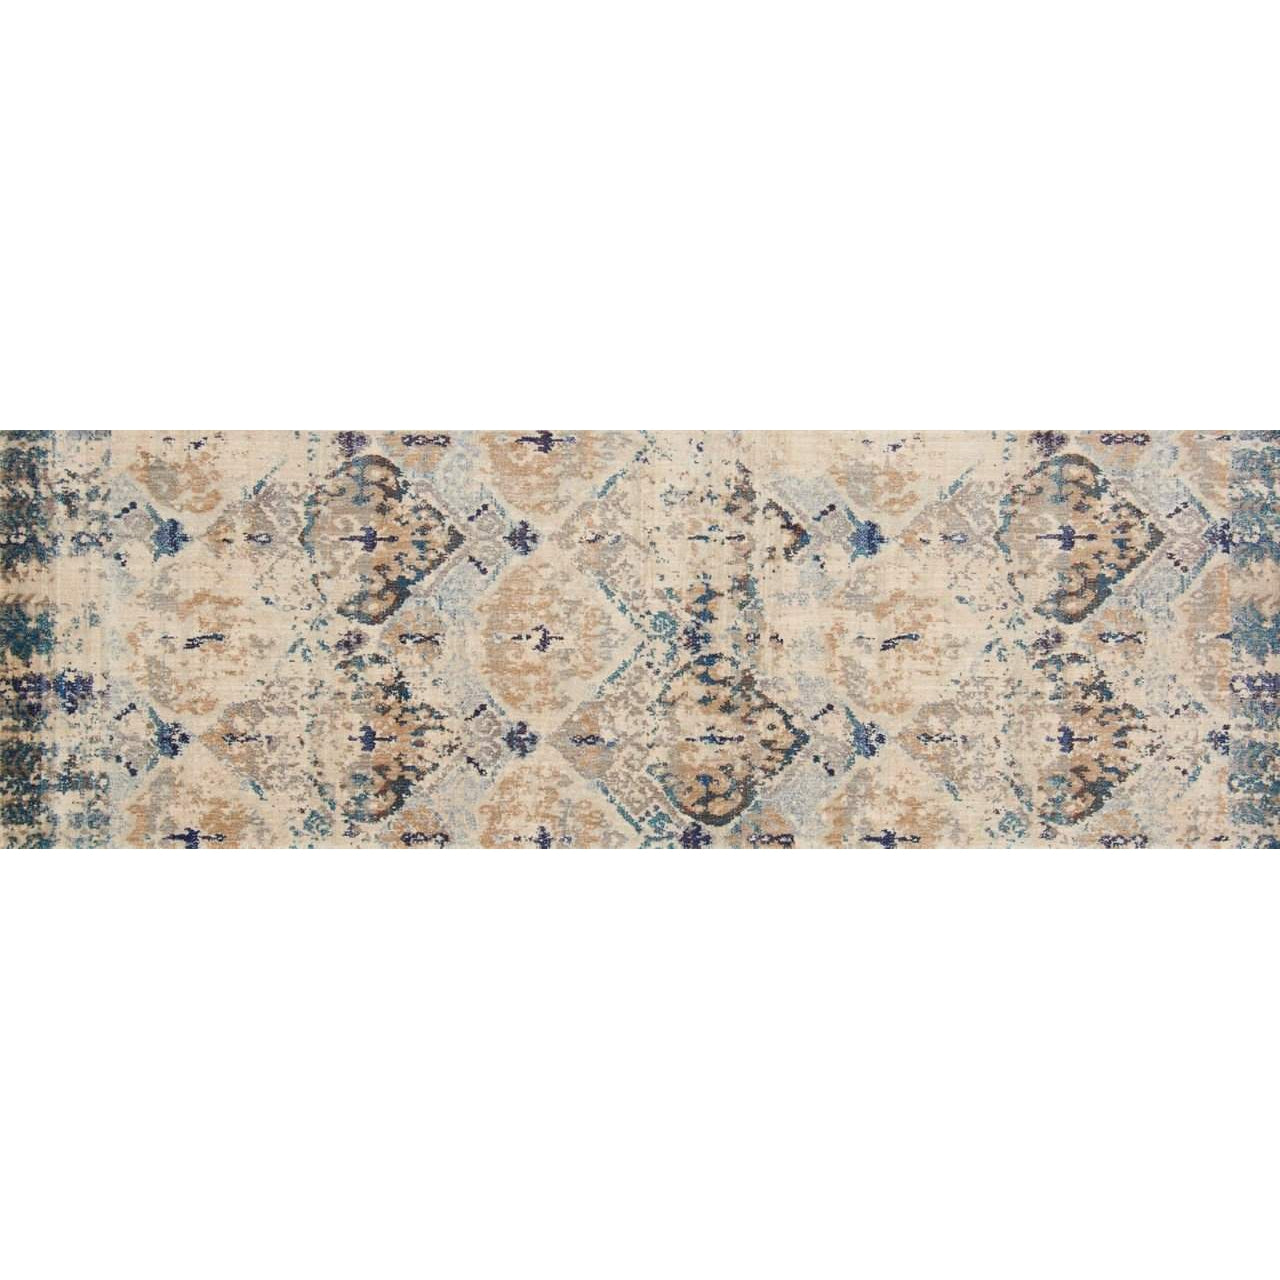 Joanna Gaines Rugs Of Magnolia Home Kivi Collection